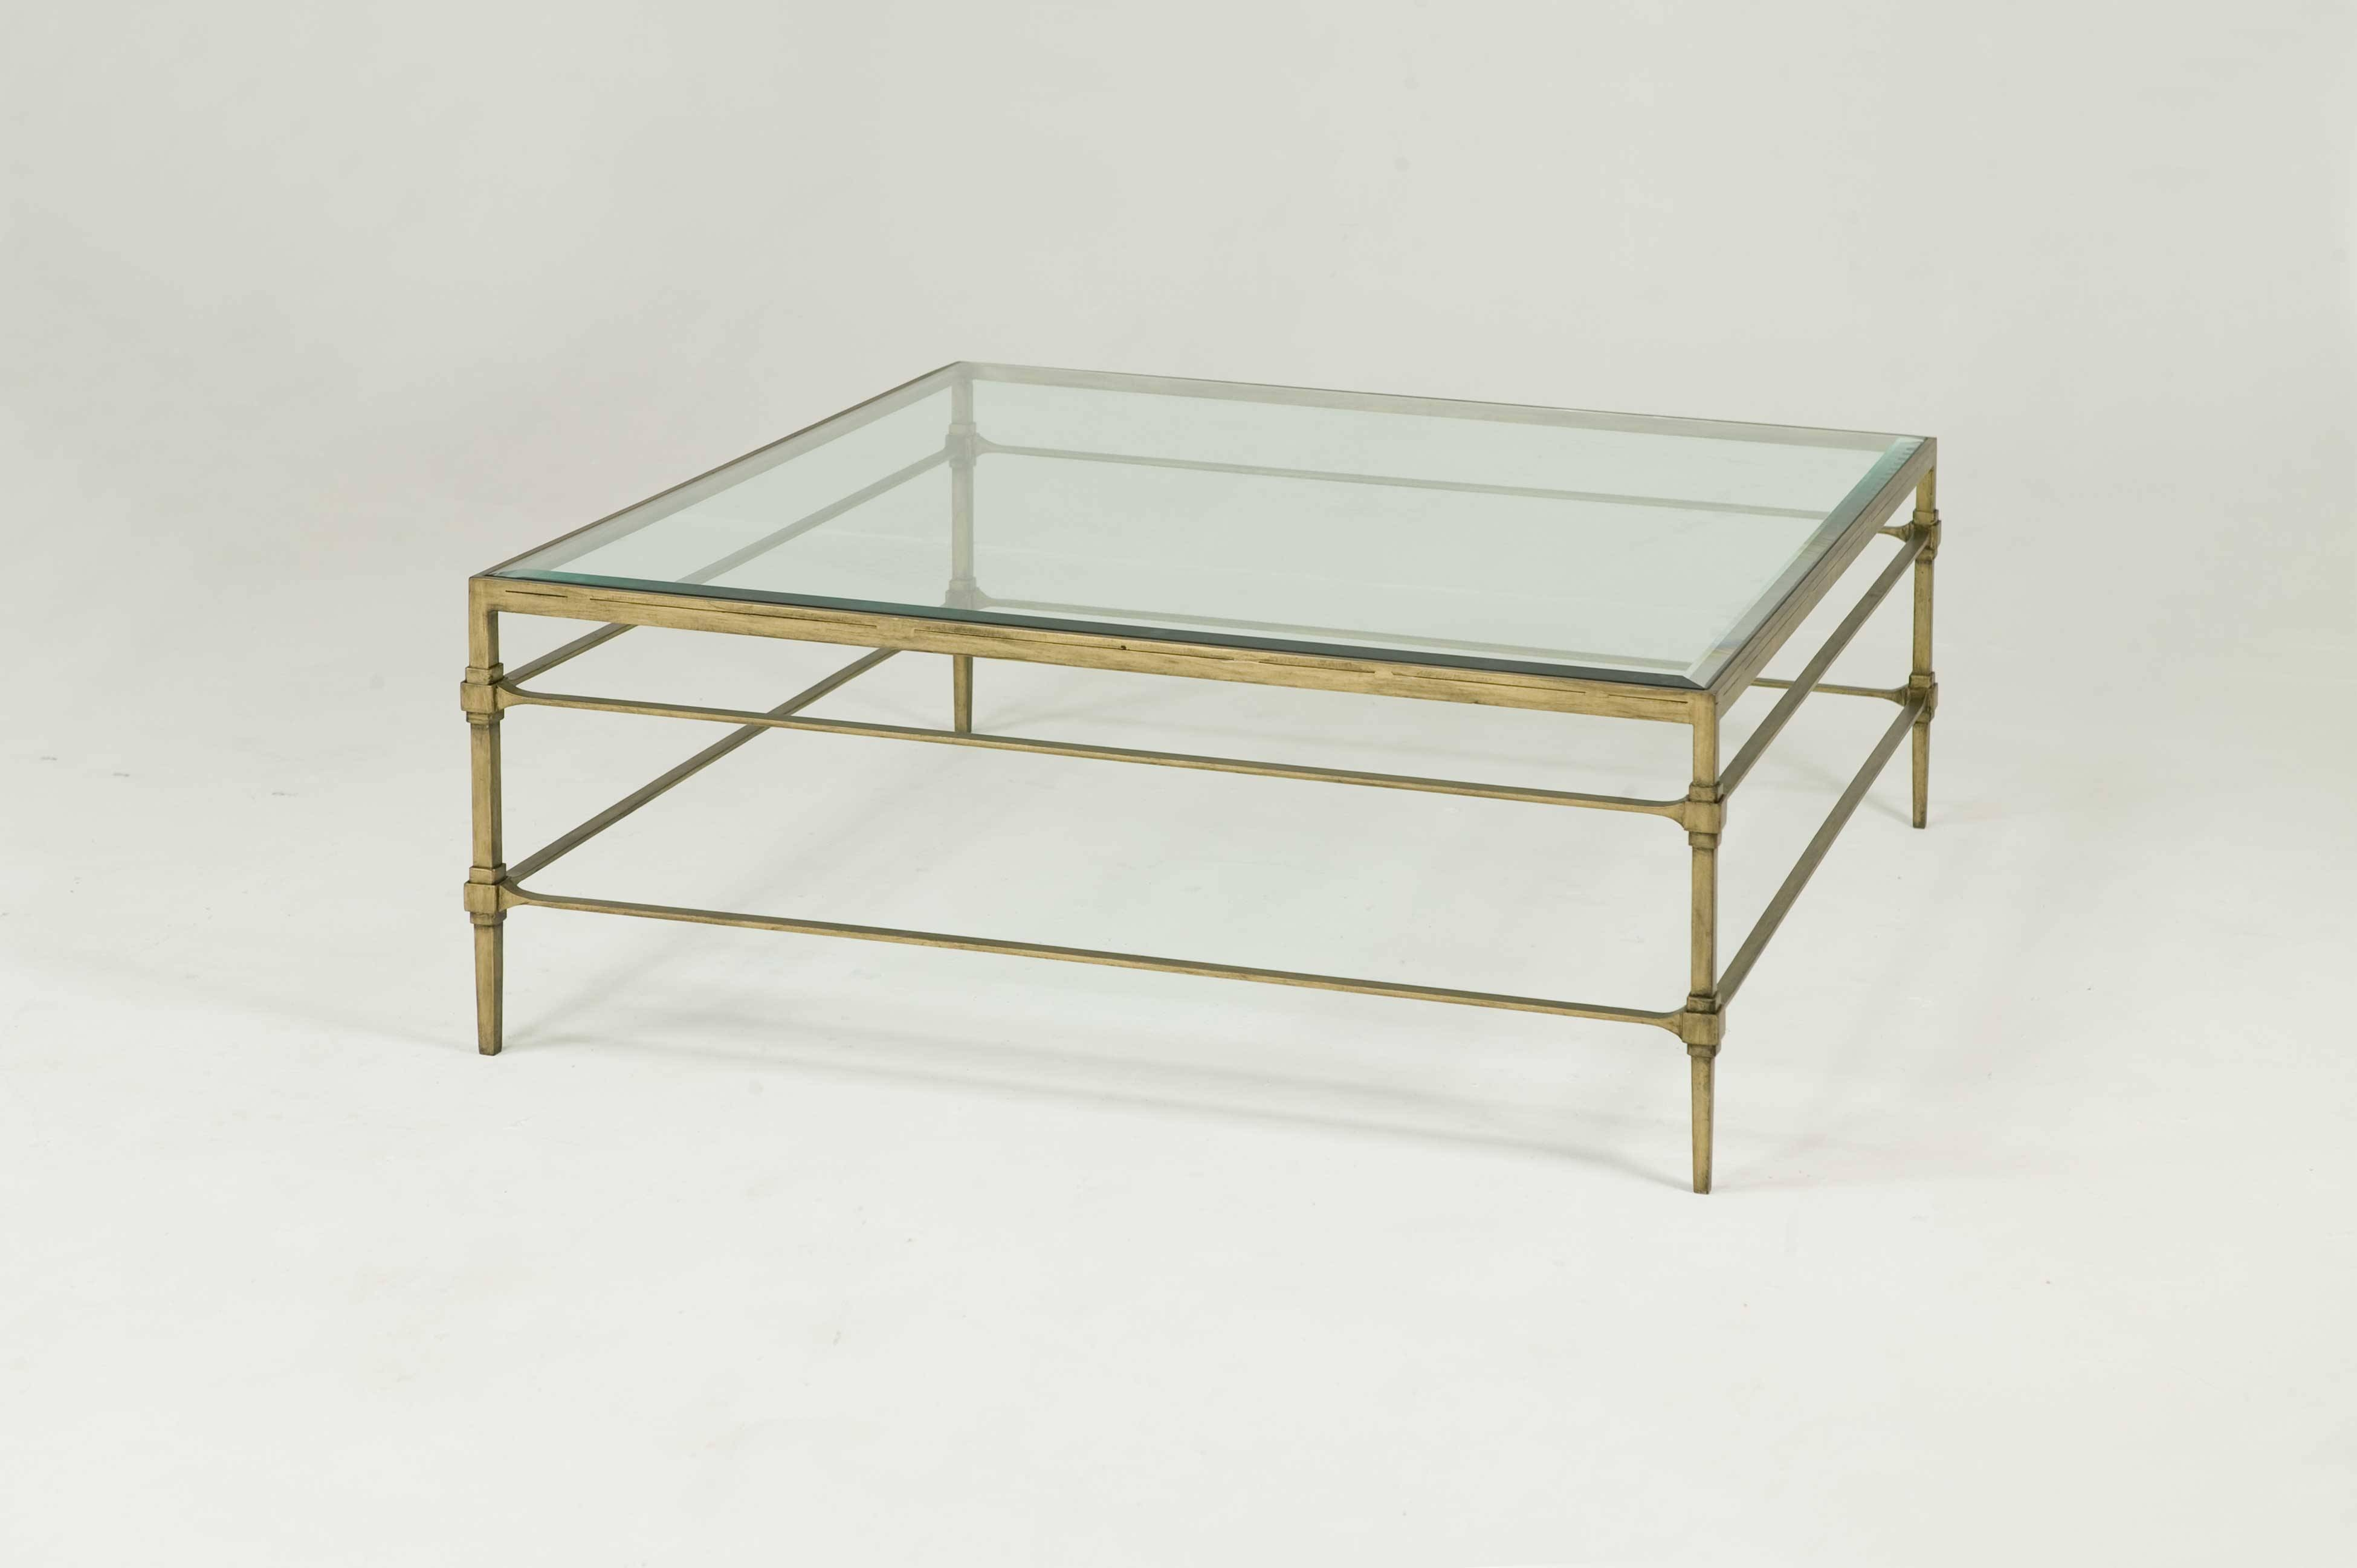 Itemstype | Bausman & Company intended for Glass Coffee Tables With Shelf (Image 19 of 30)